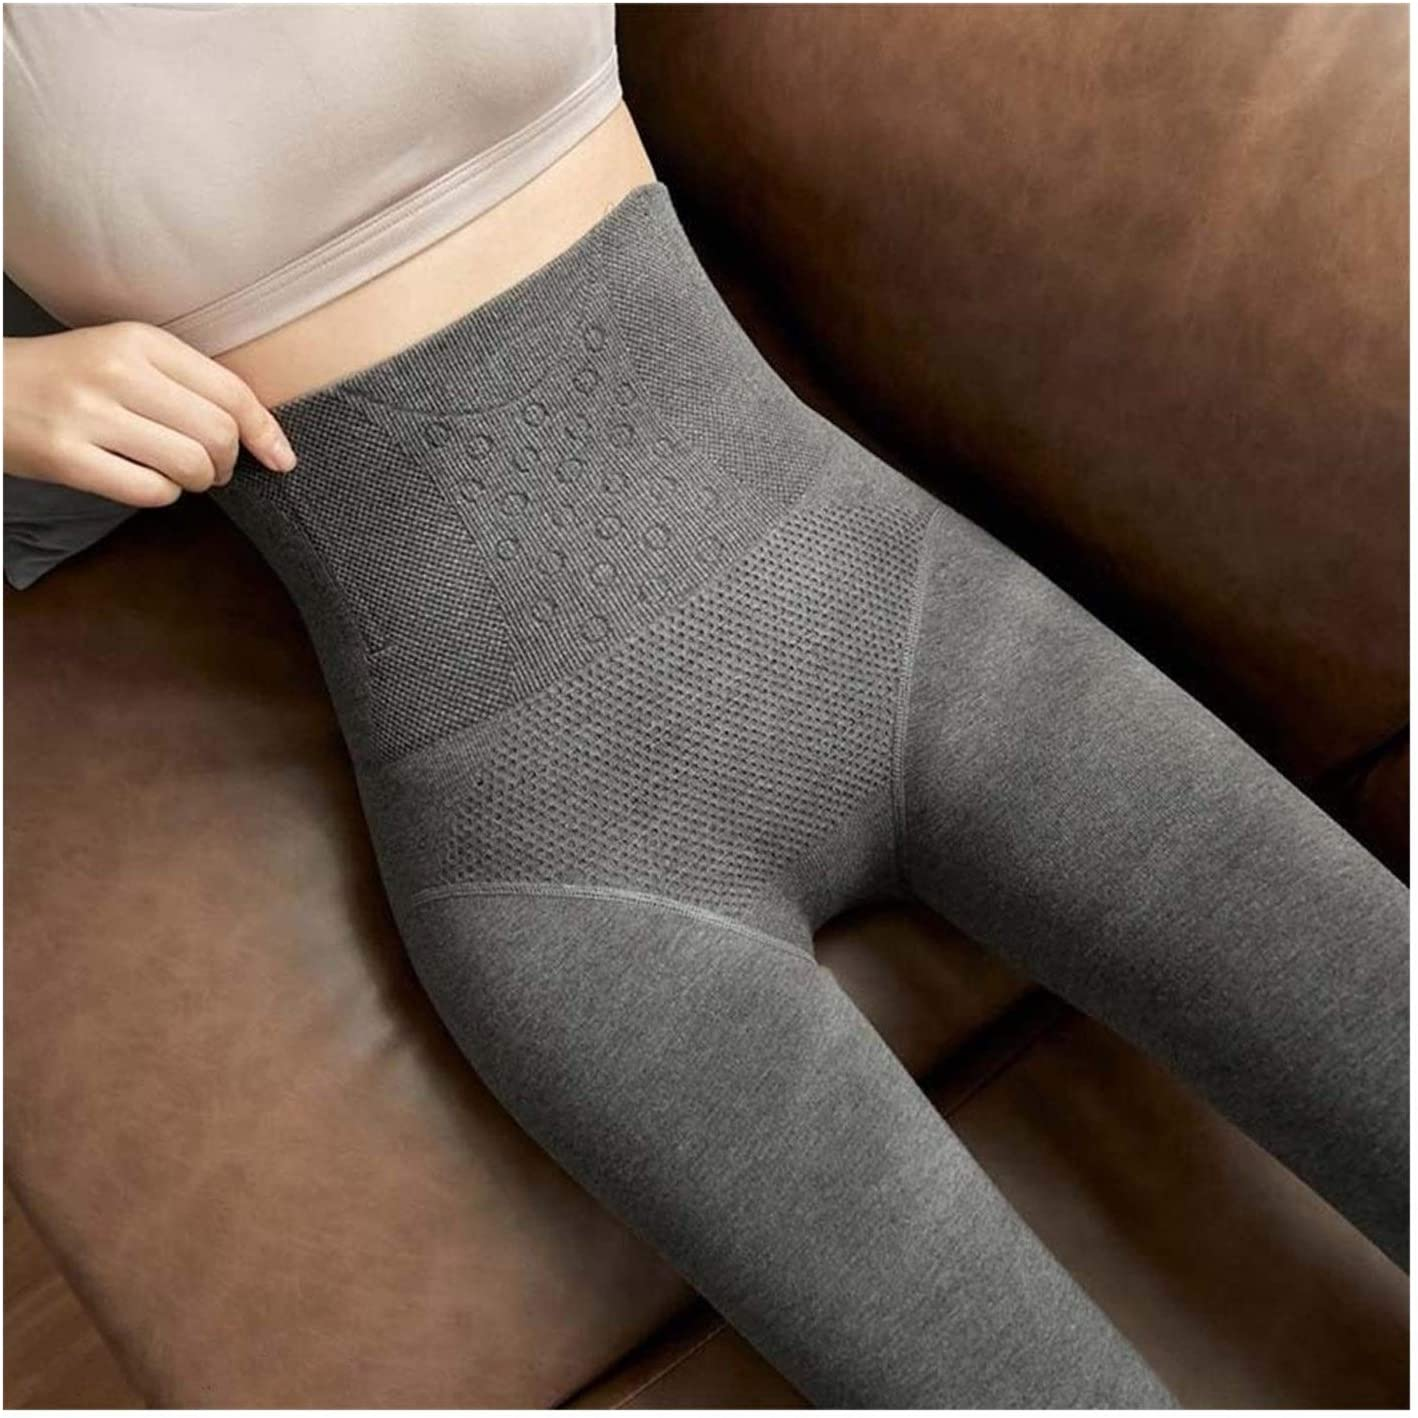 Linyuex High Waist Abdomen Pants Tights Women Pantyhose Fleece Warm Winter Thermal Tights Thick Pantyhose (Color : Step on Gray, Size : 260g)